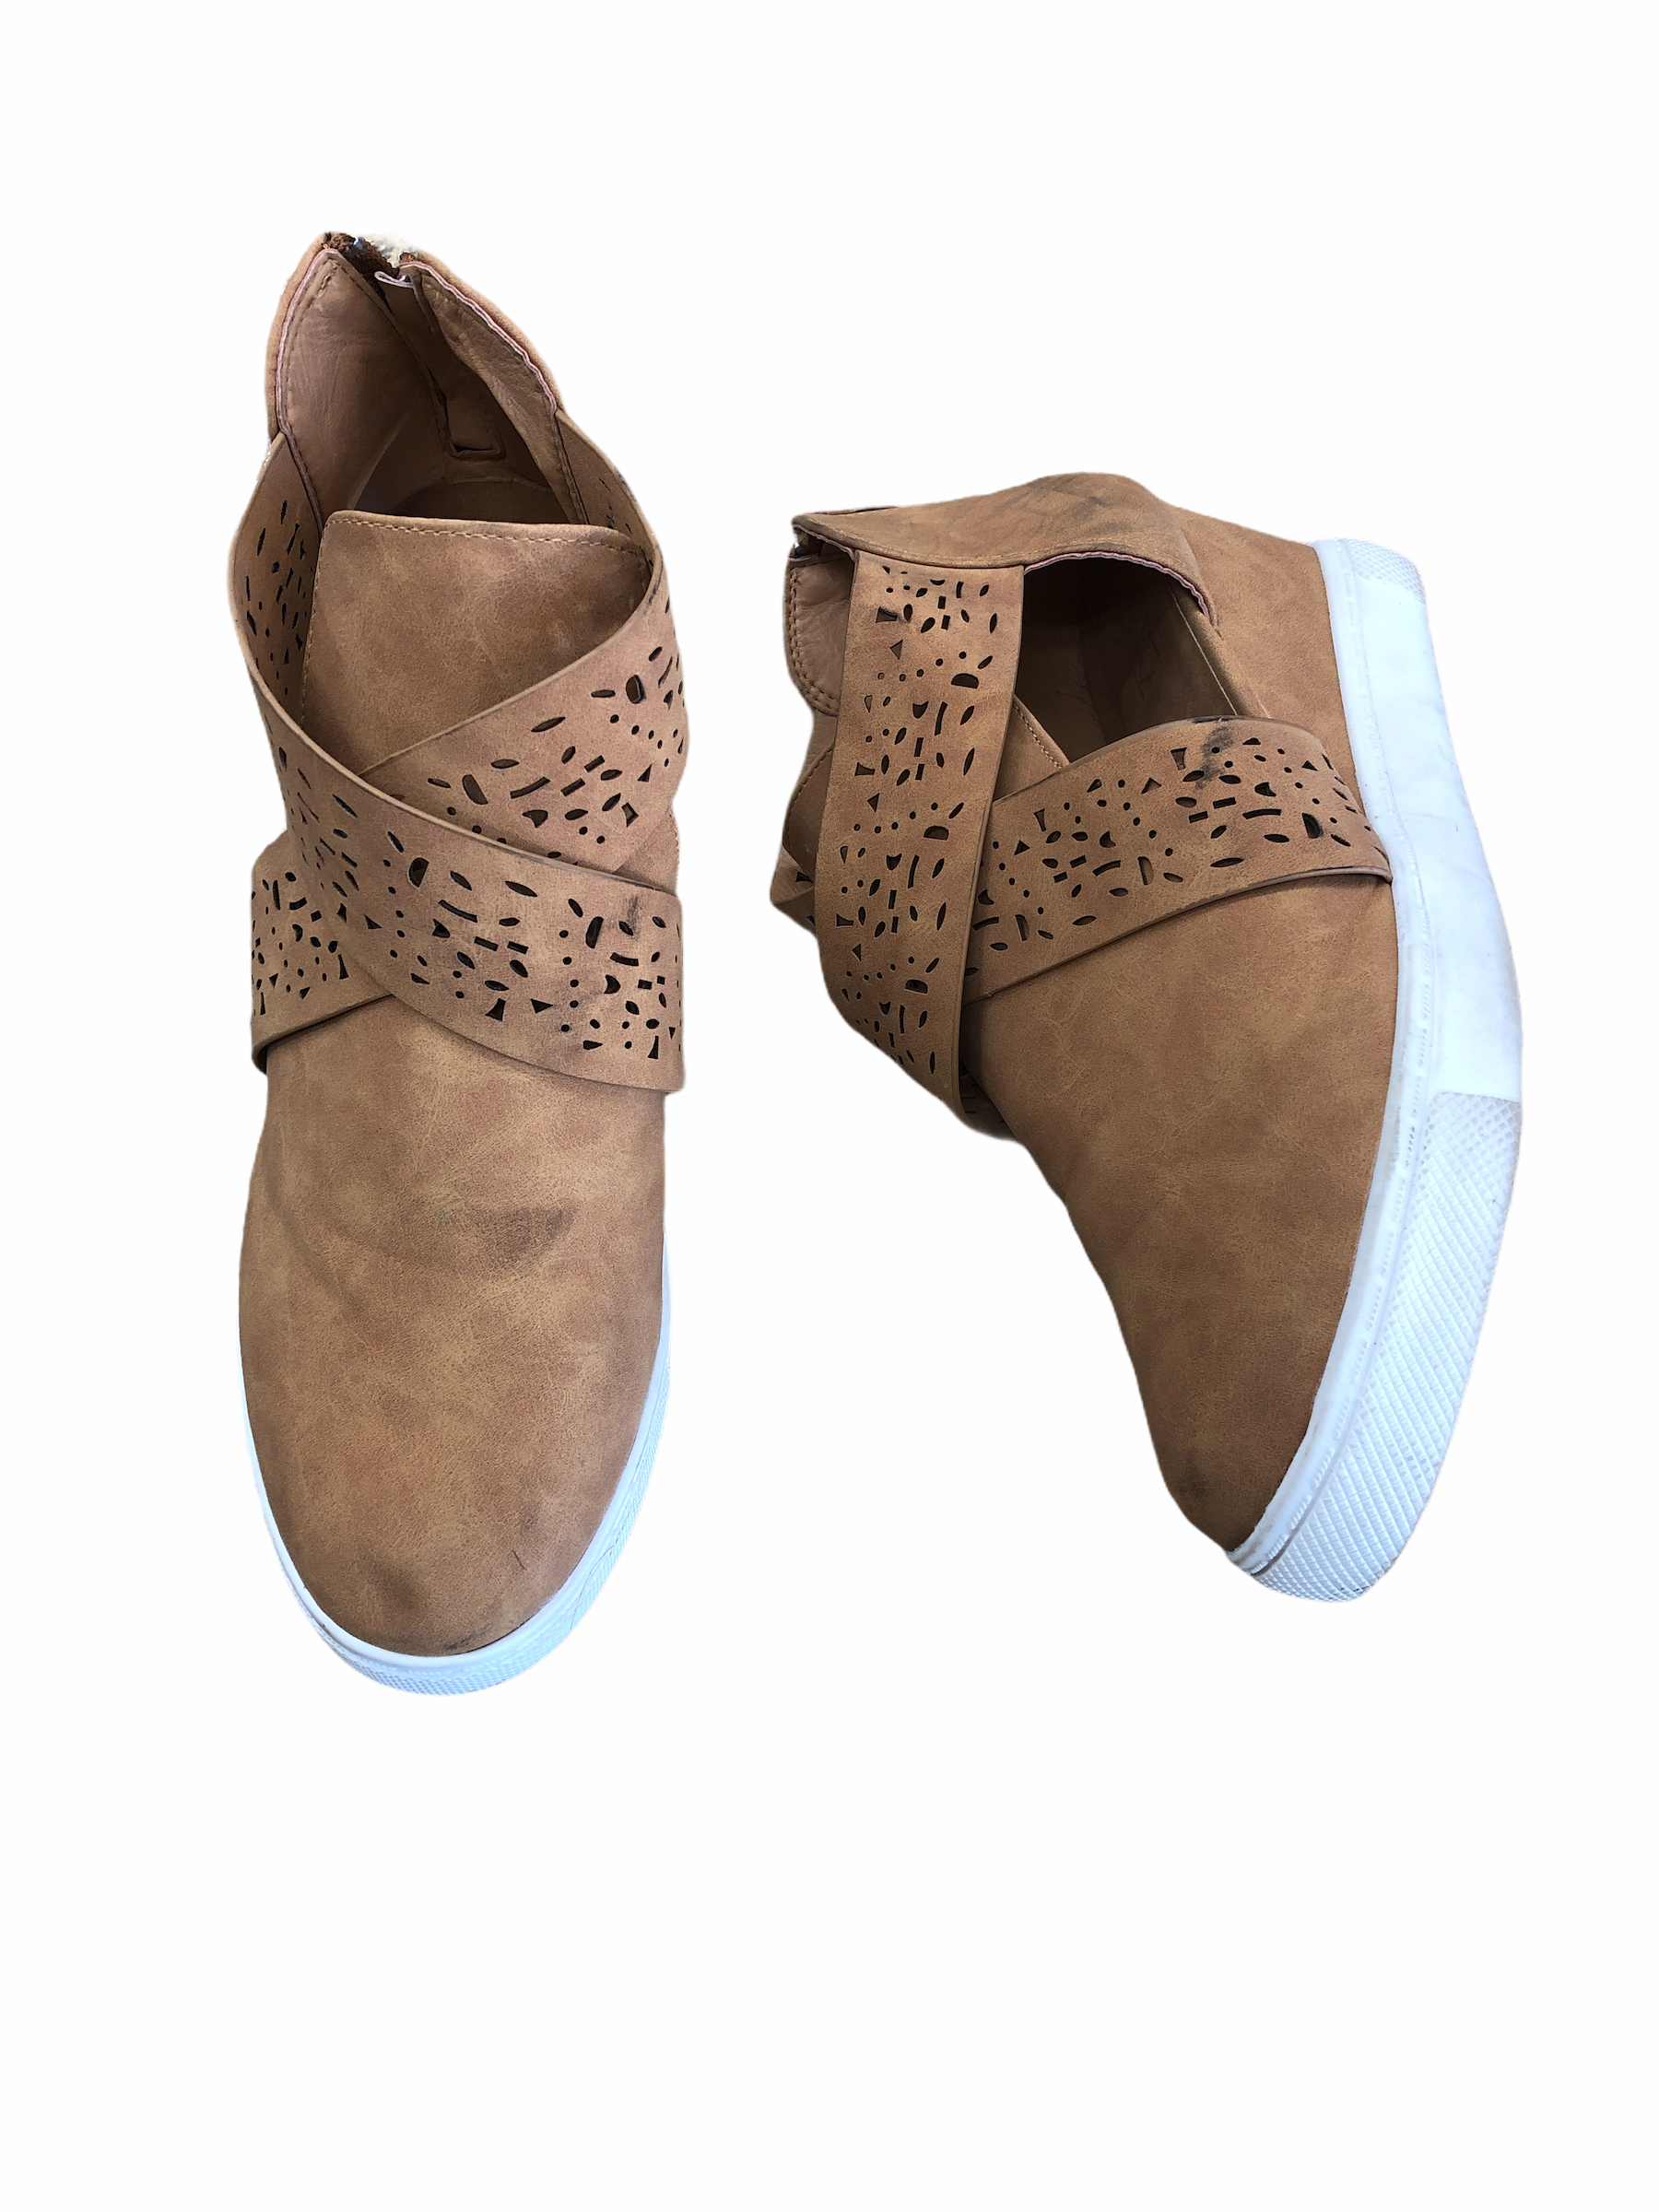 Primary Photo - brand:    clothes mentor , style: shoes athletic , color: tan , size: 9 , other info: yo ki - , sku: 267-26793-4788